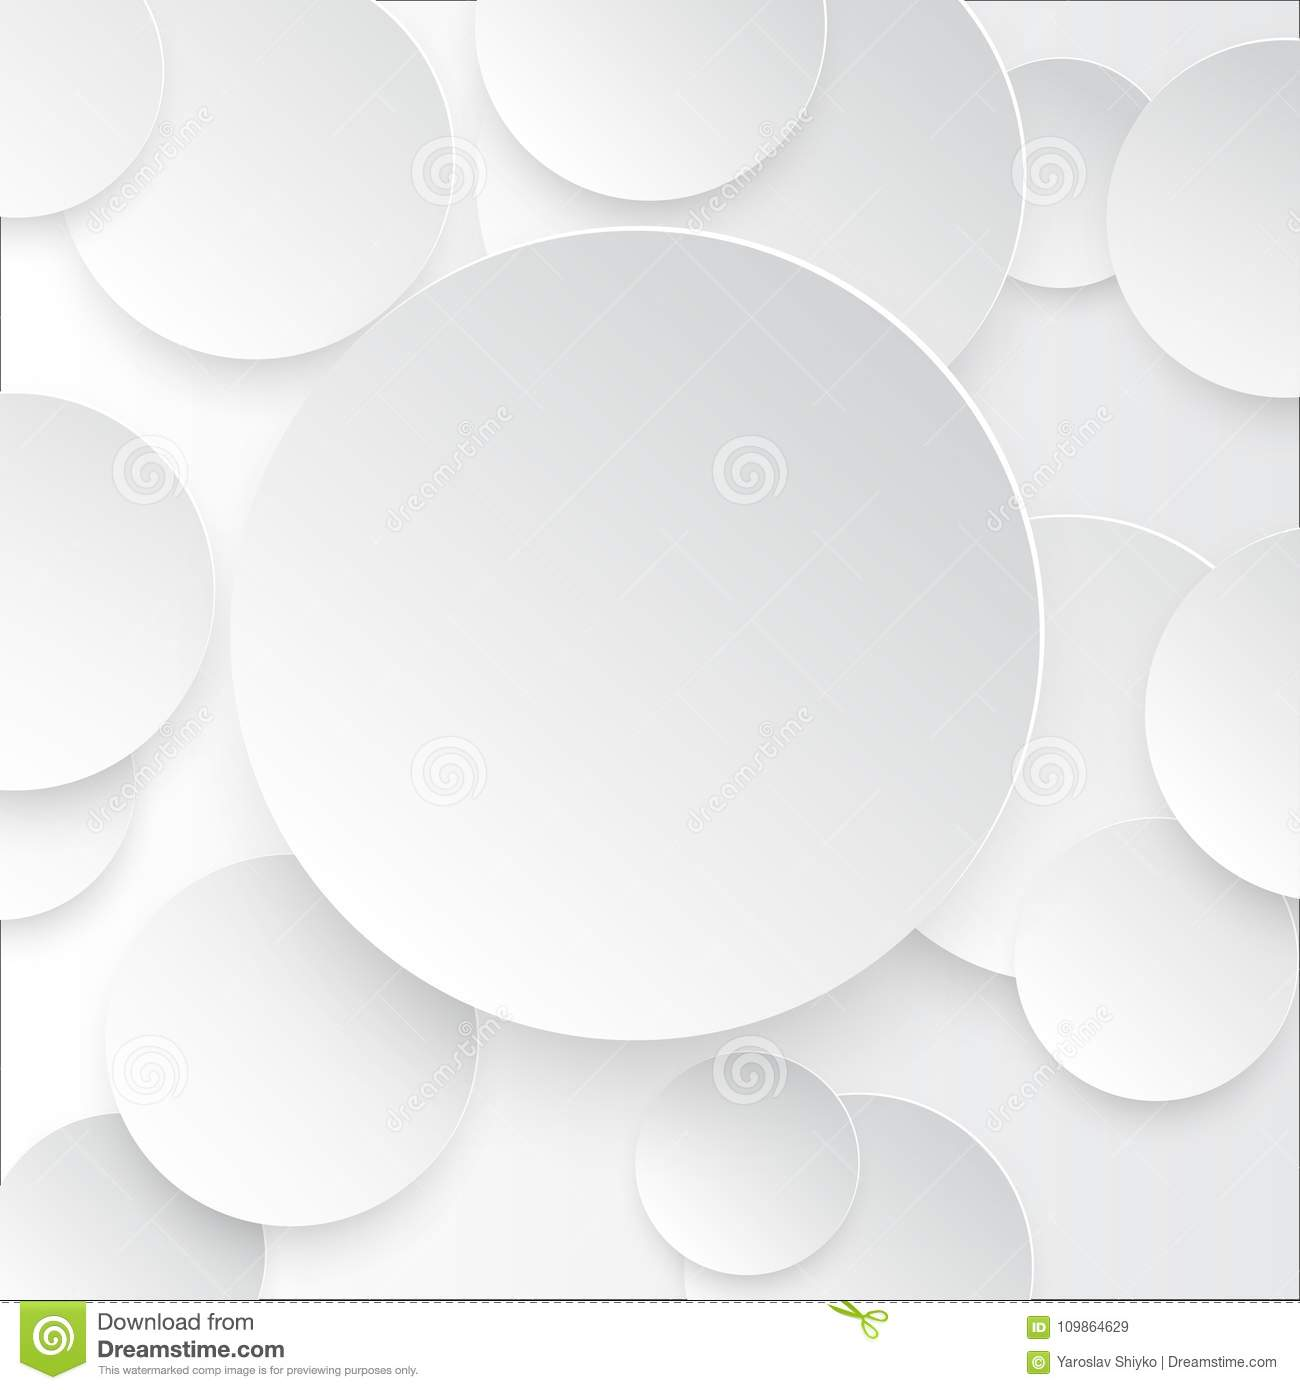 Vector illustration of white paper round notes with shadow